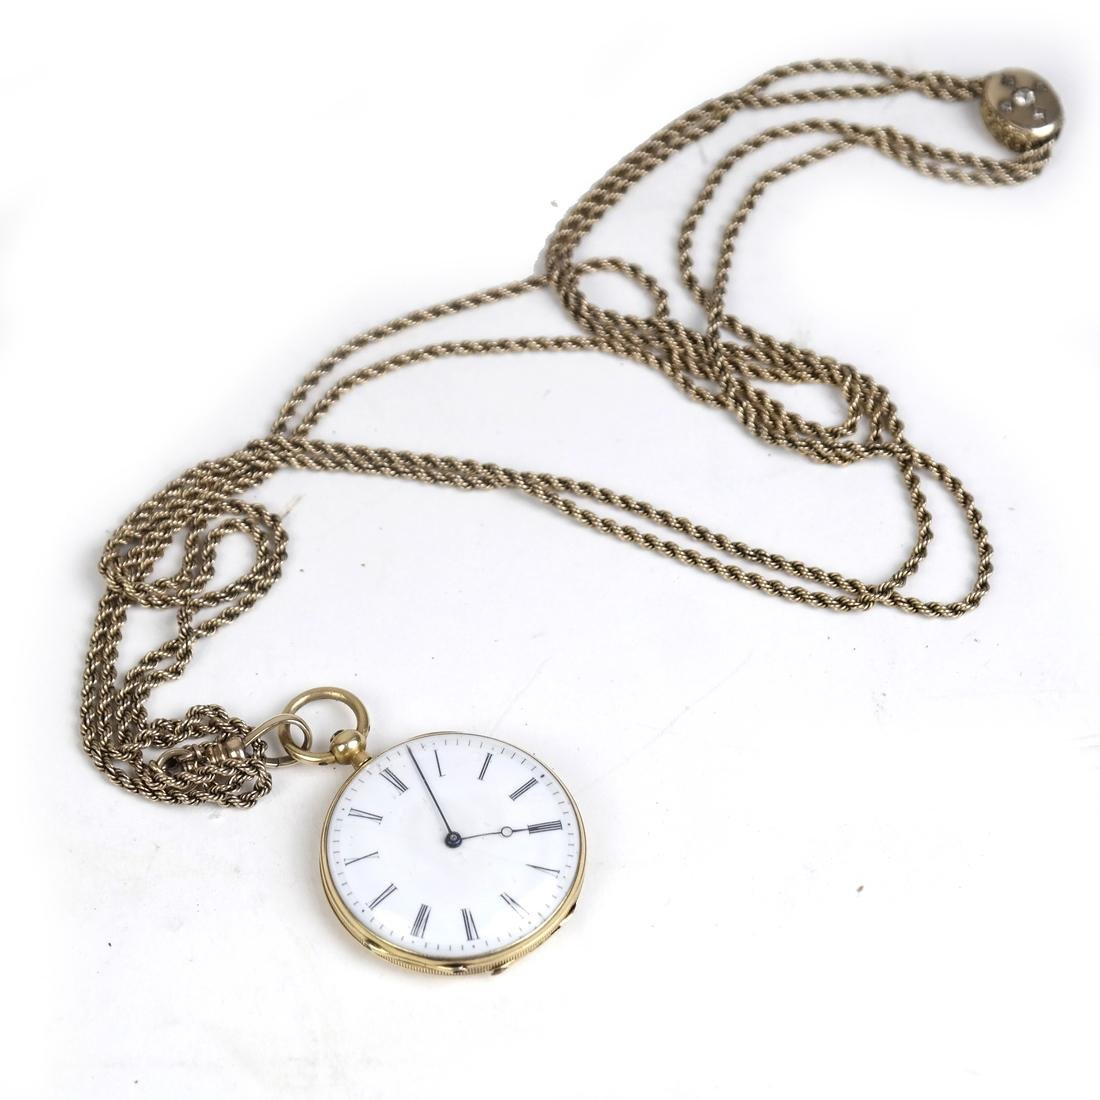 14k Yellow Gold Pocket Watch